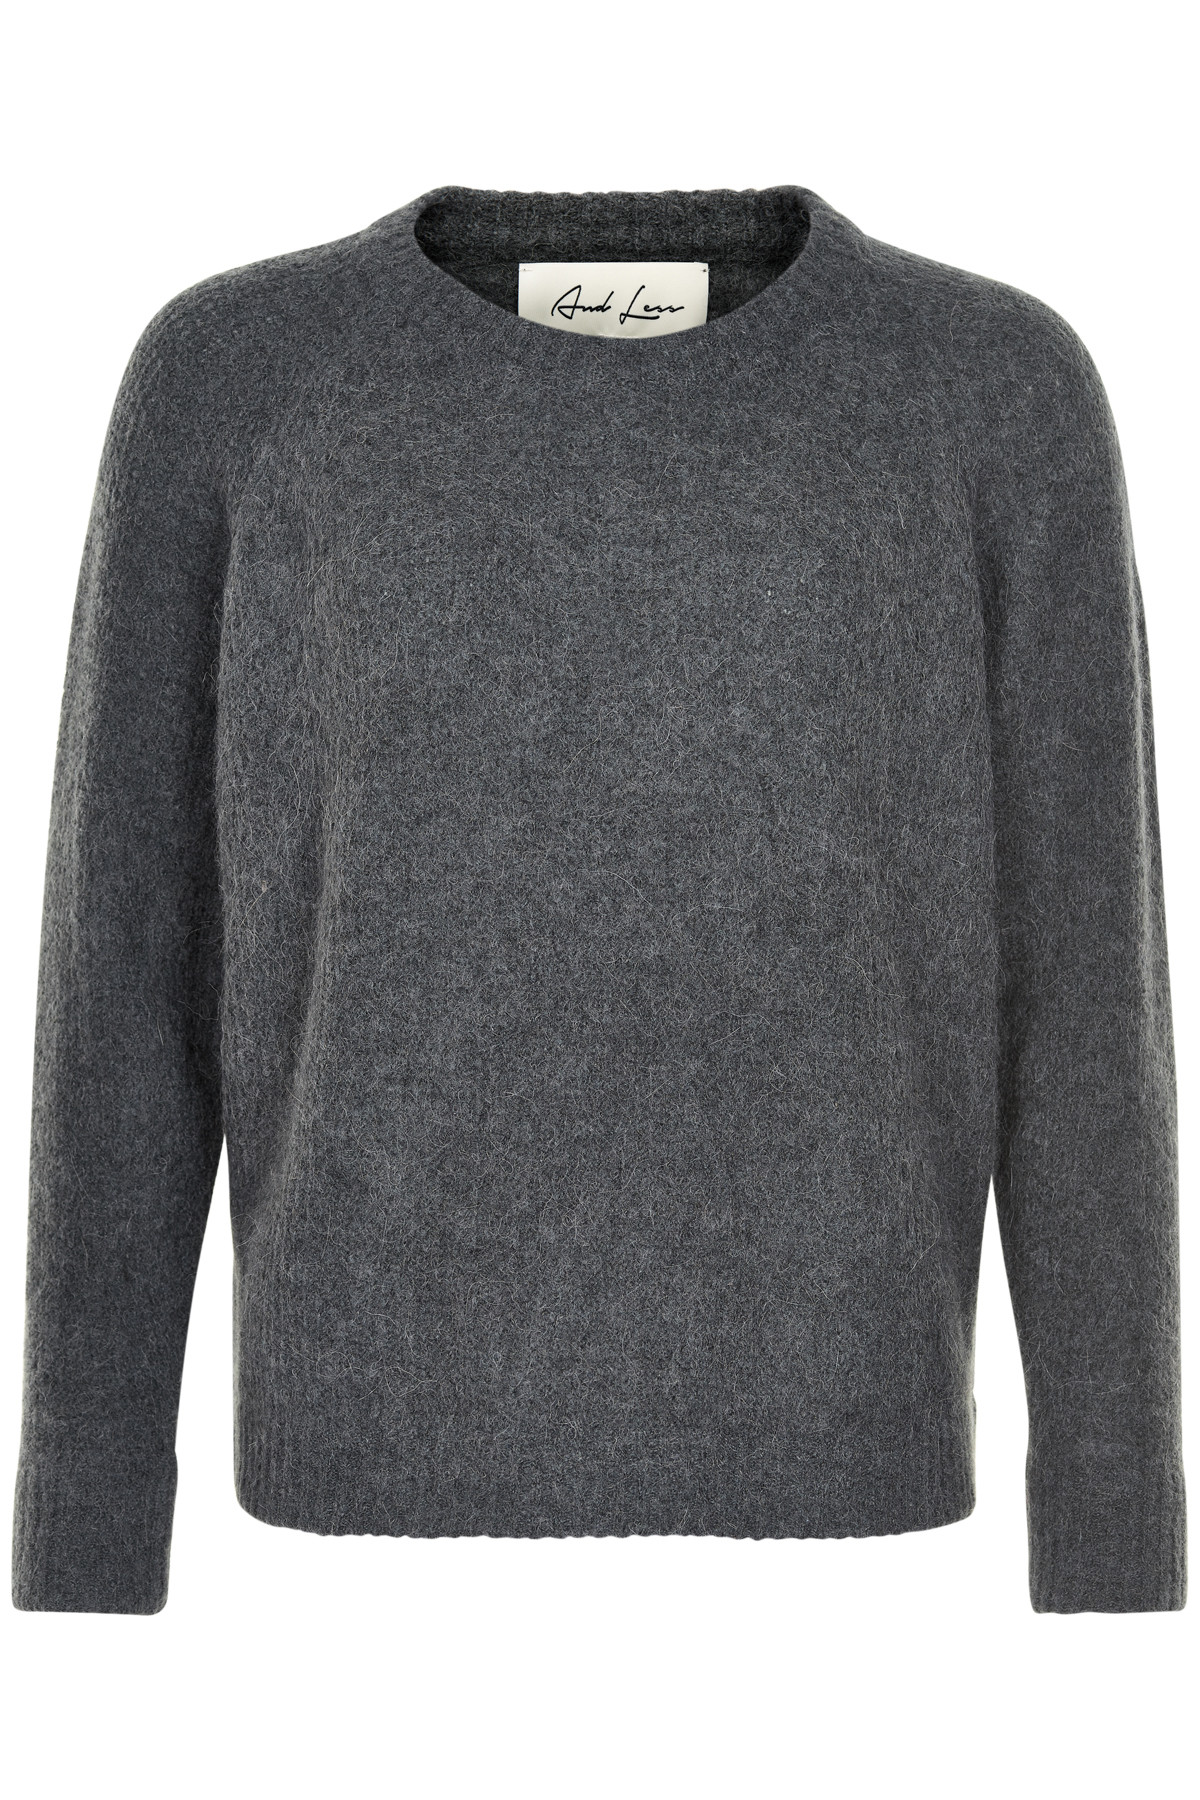 Image of   AND LESS ALBAMBINA SWEATER 5519211 F (Folkstone, M)